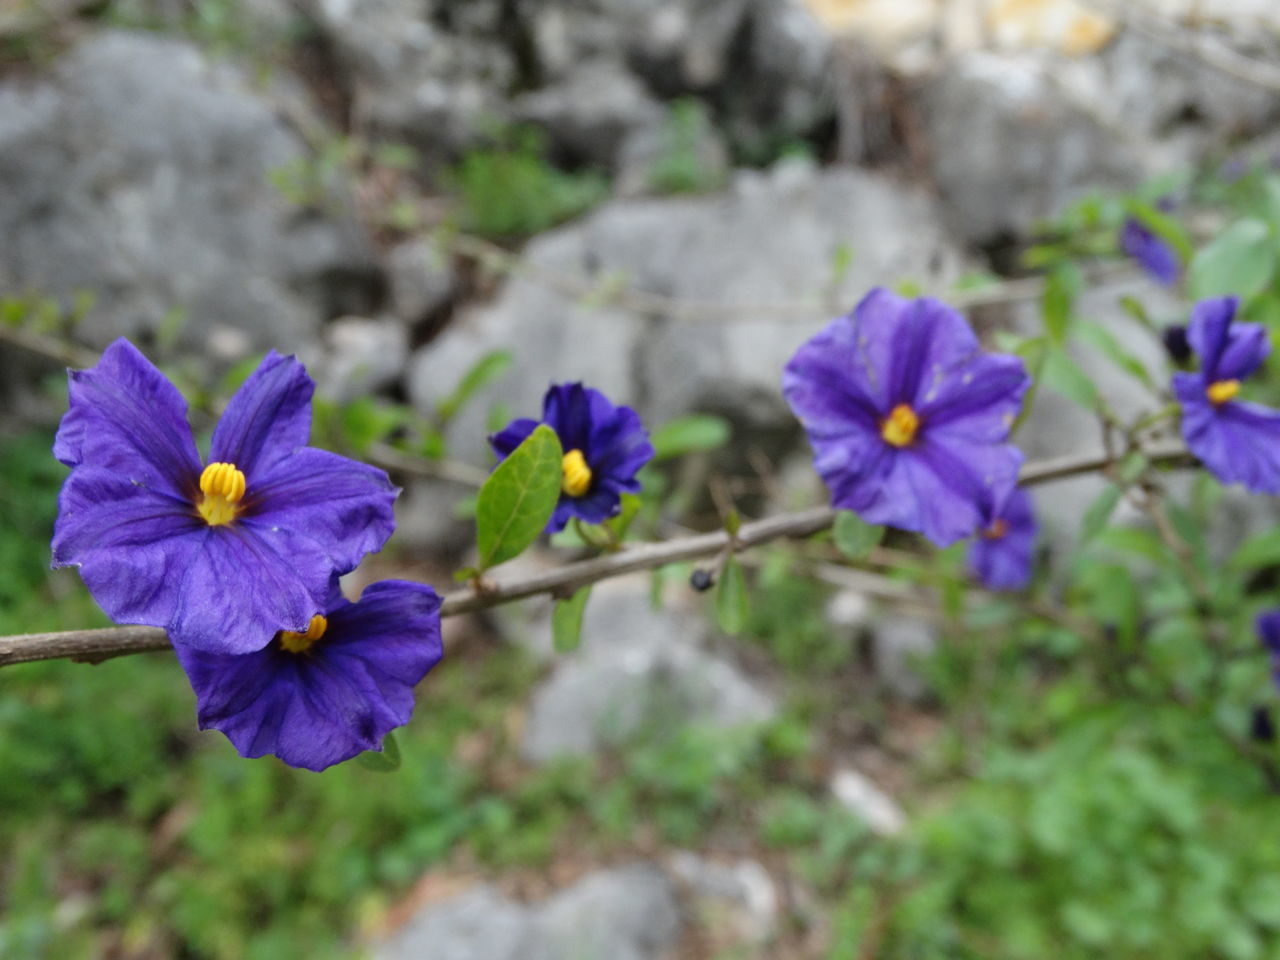 Beauty In Nature Blooming Close-up Day Flower Flower Head Fragility Freshness Growth Nature No People Outdoors Petal Plant Purple